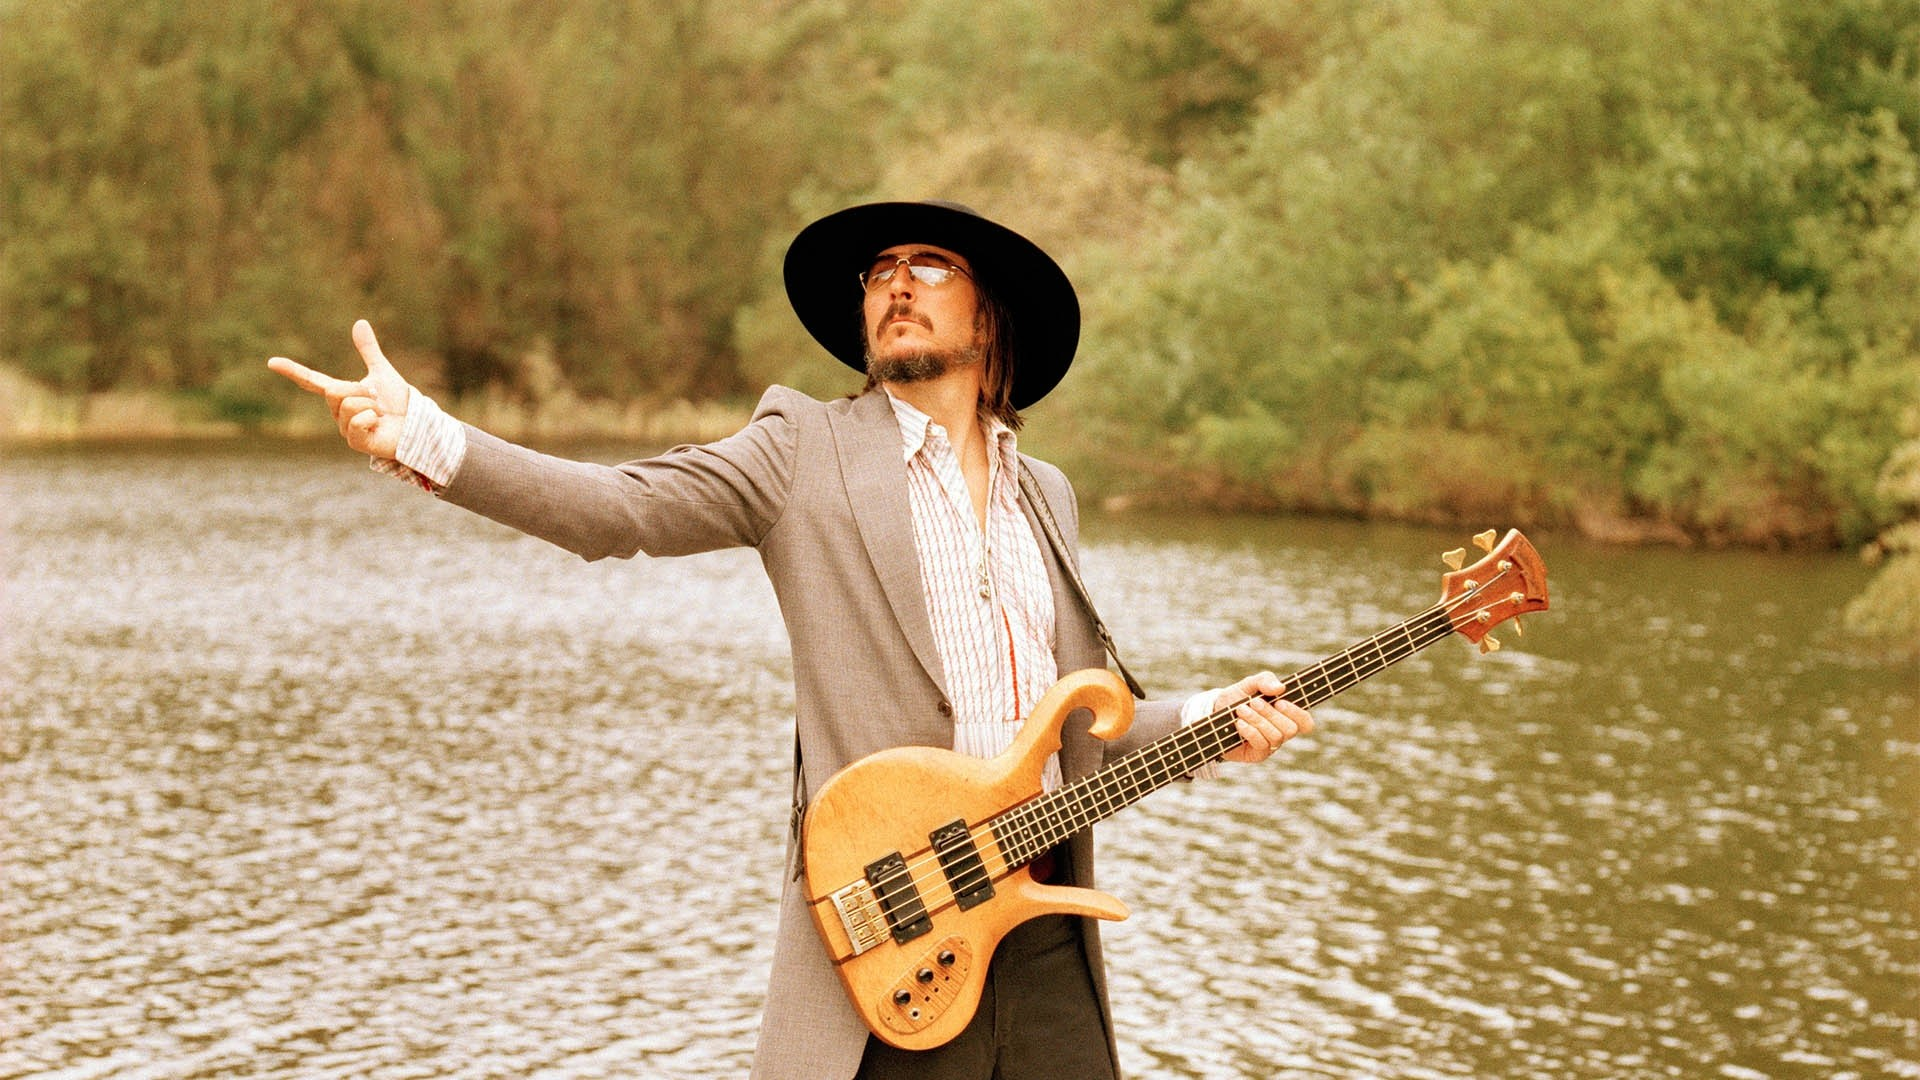 1920x1080 Preview wallpaper primus, guitar, lake, hat, daylight